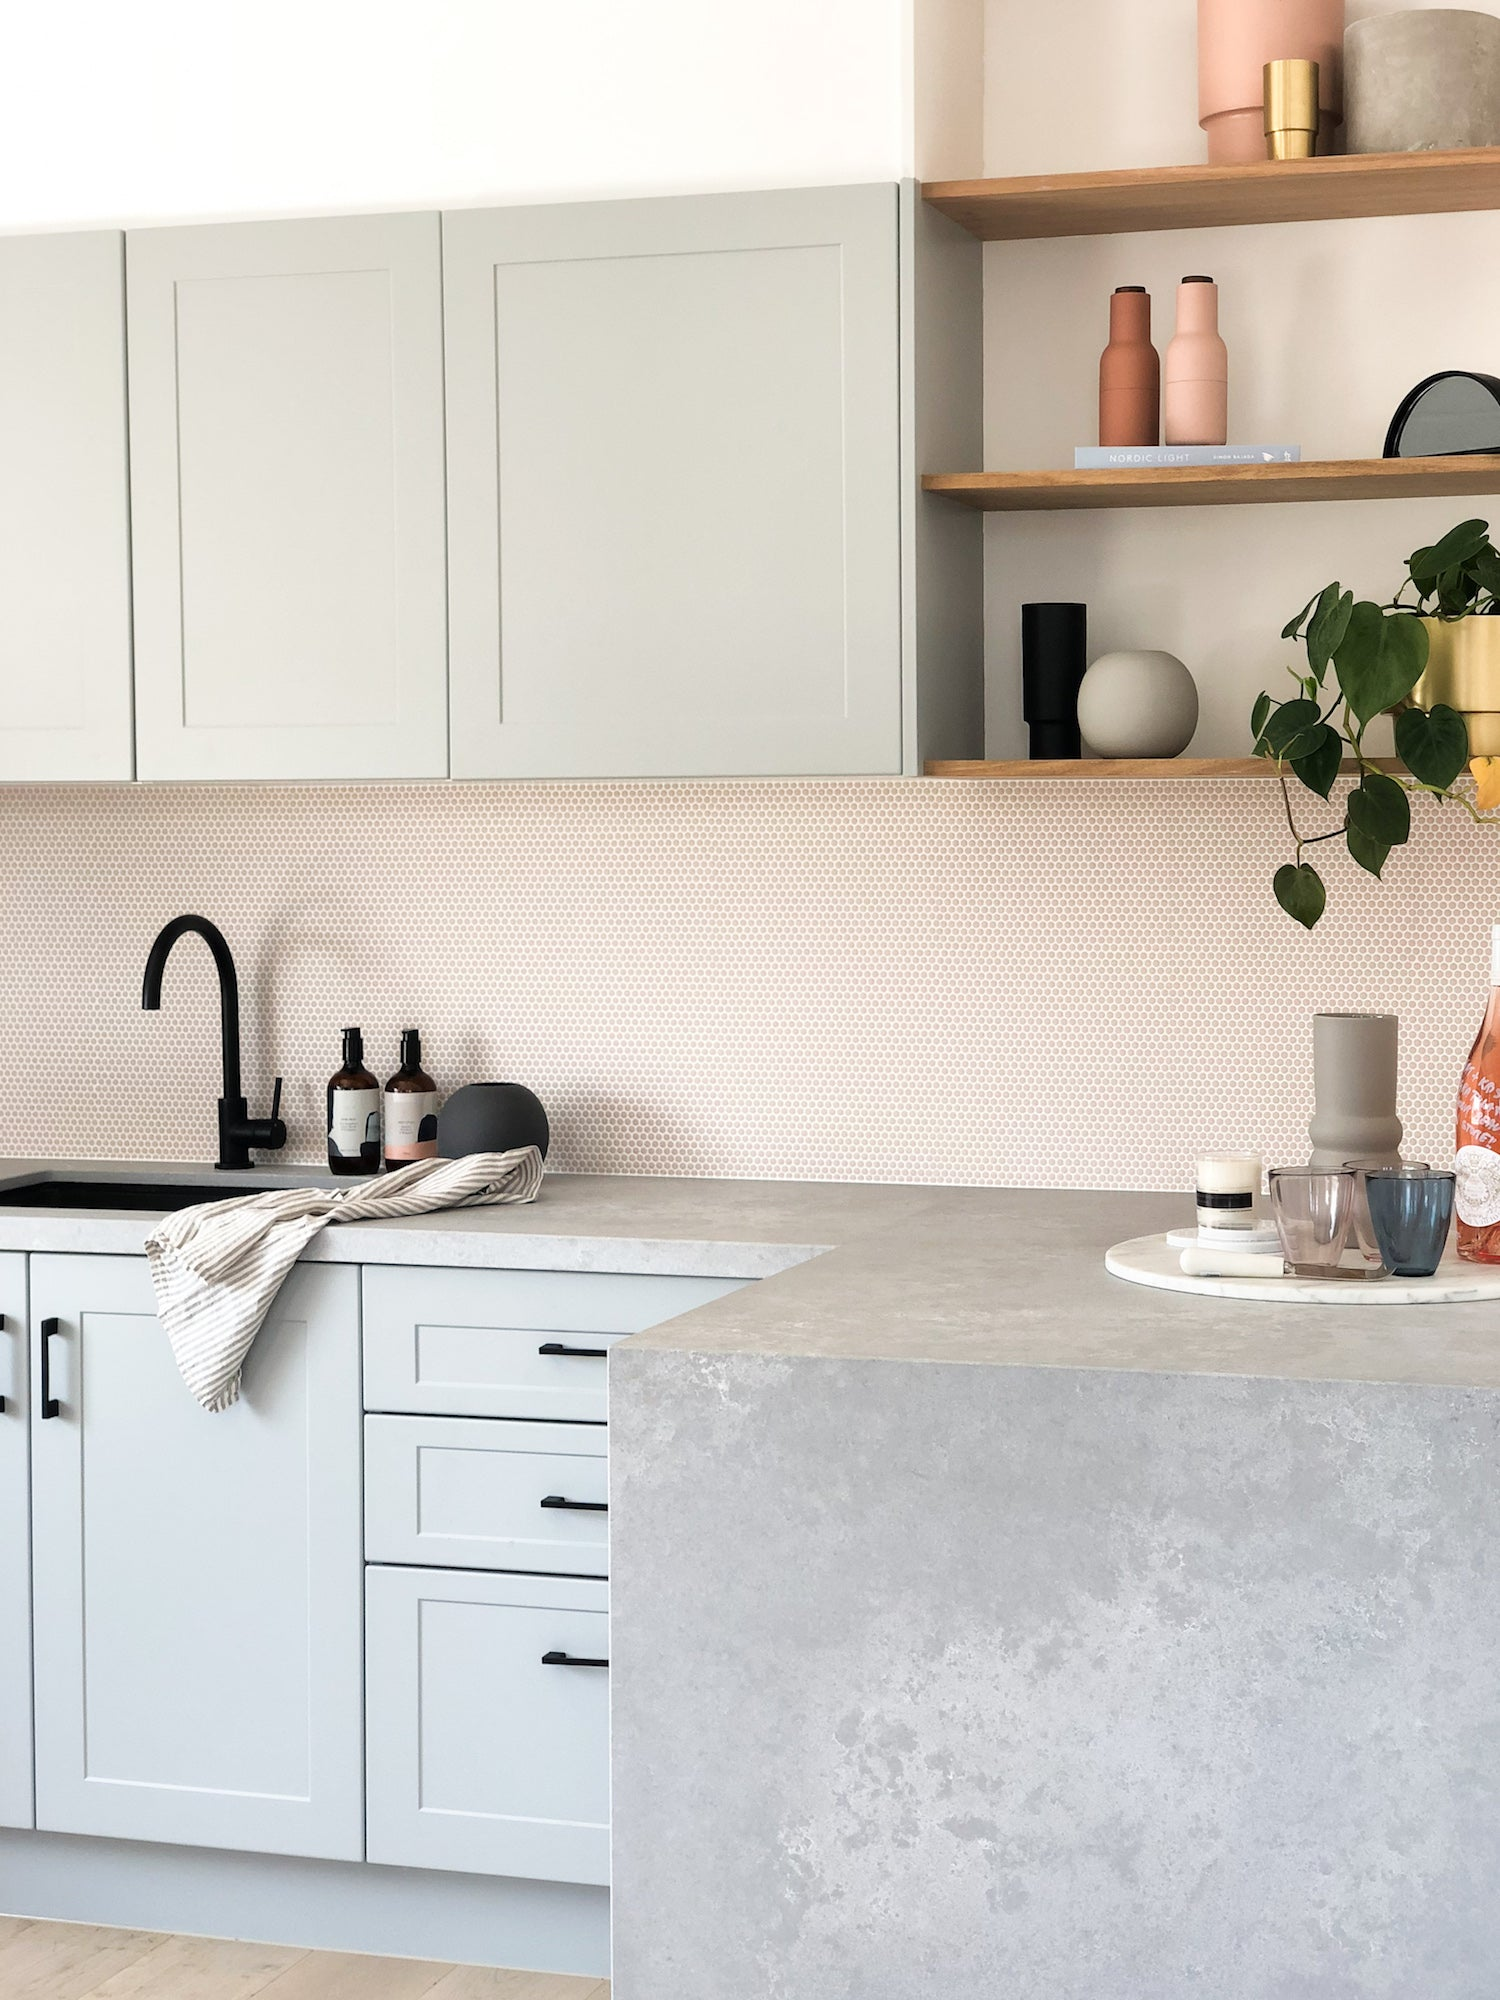 Giving the new norsuHOME concept store some kitchen love